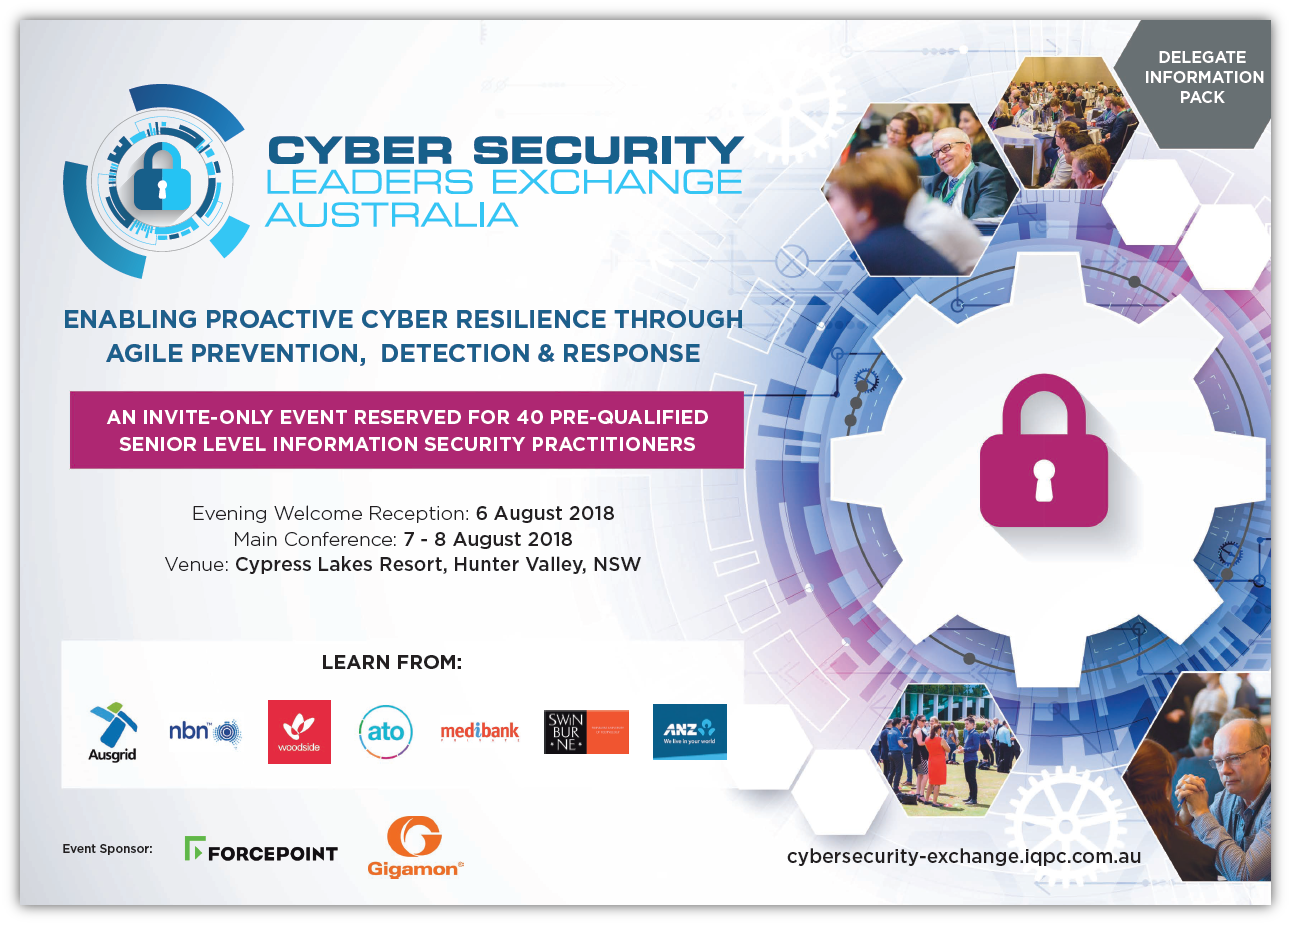 Download Past Delegate Information Pack - Cyber Security Leaders Exchange 2018